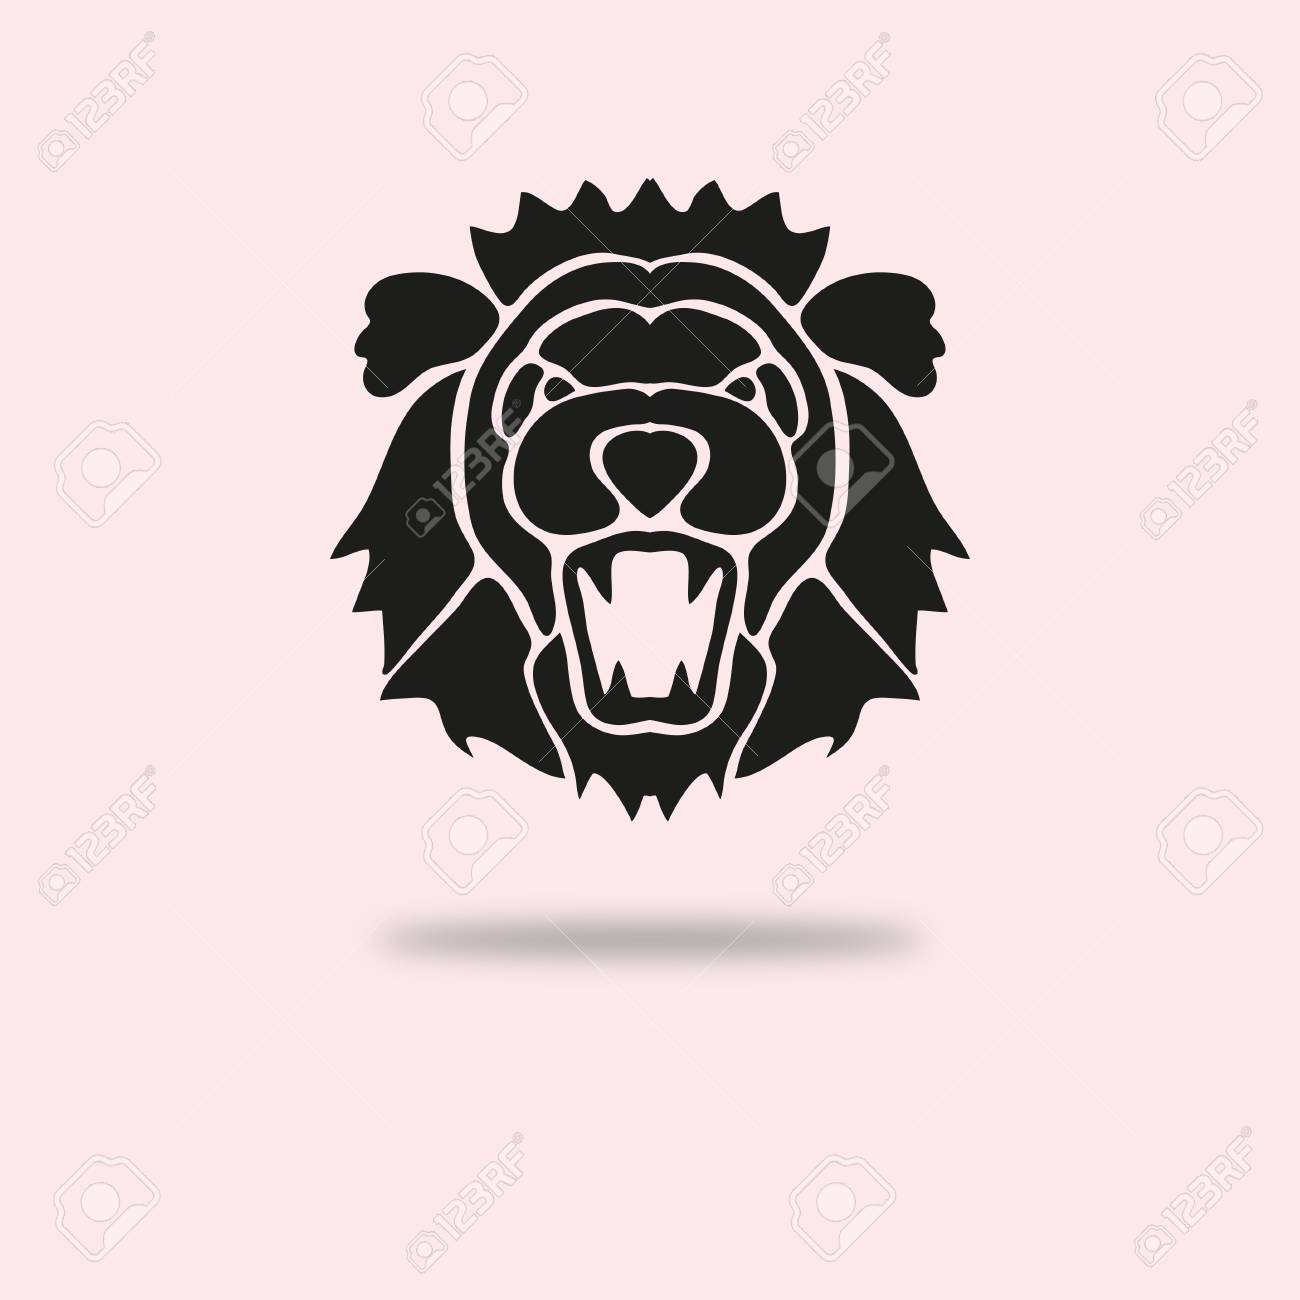 Abstract roaring lion symbol, design element